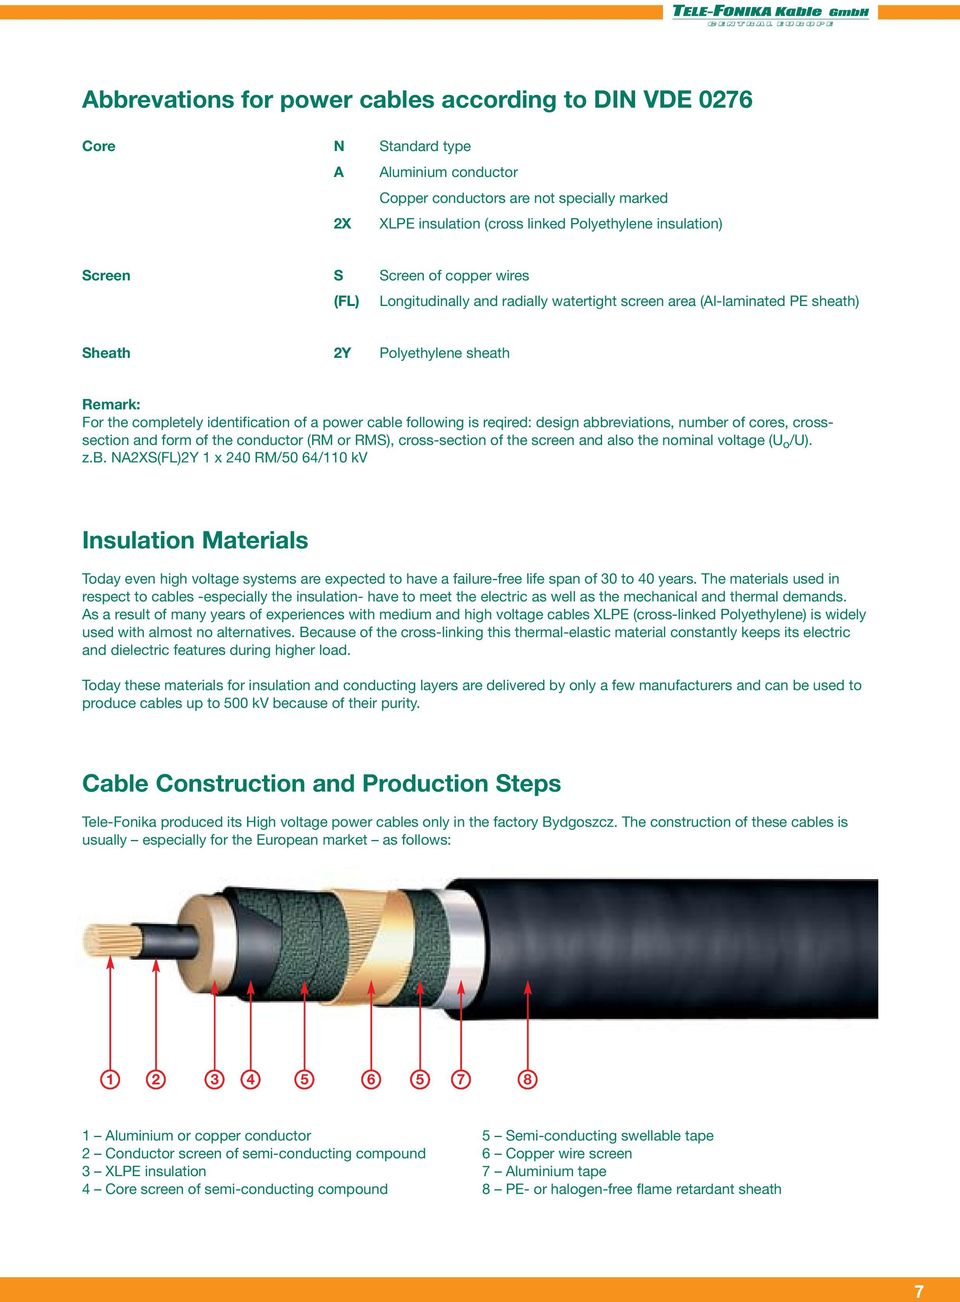 cable following is reqired: design abbreviations, number of cores, crosssection and form of the conductor (RM or RMS), cross-section of the screen and also the nominal voltage (U o /U). z.b. NA2XS(FL)2Y 1 x 240 RM/50 64/110 kv Insulation Materials Today even high voltage systems are expected to have a failure-free life span of 30 to 40 years.